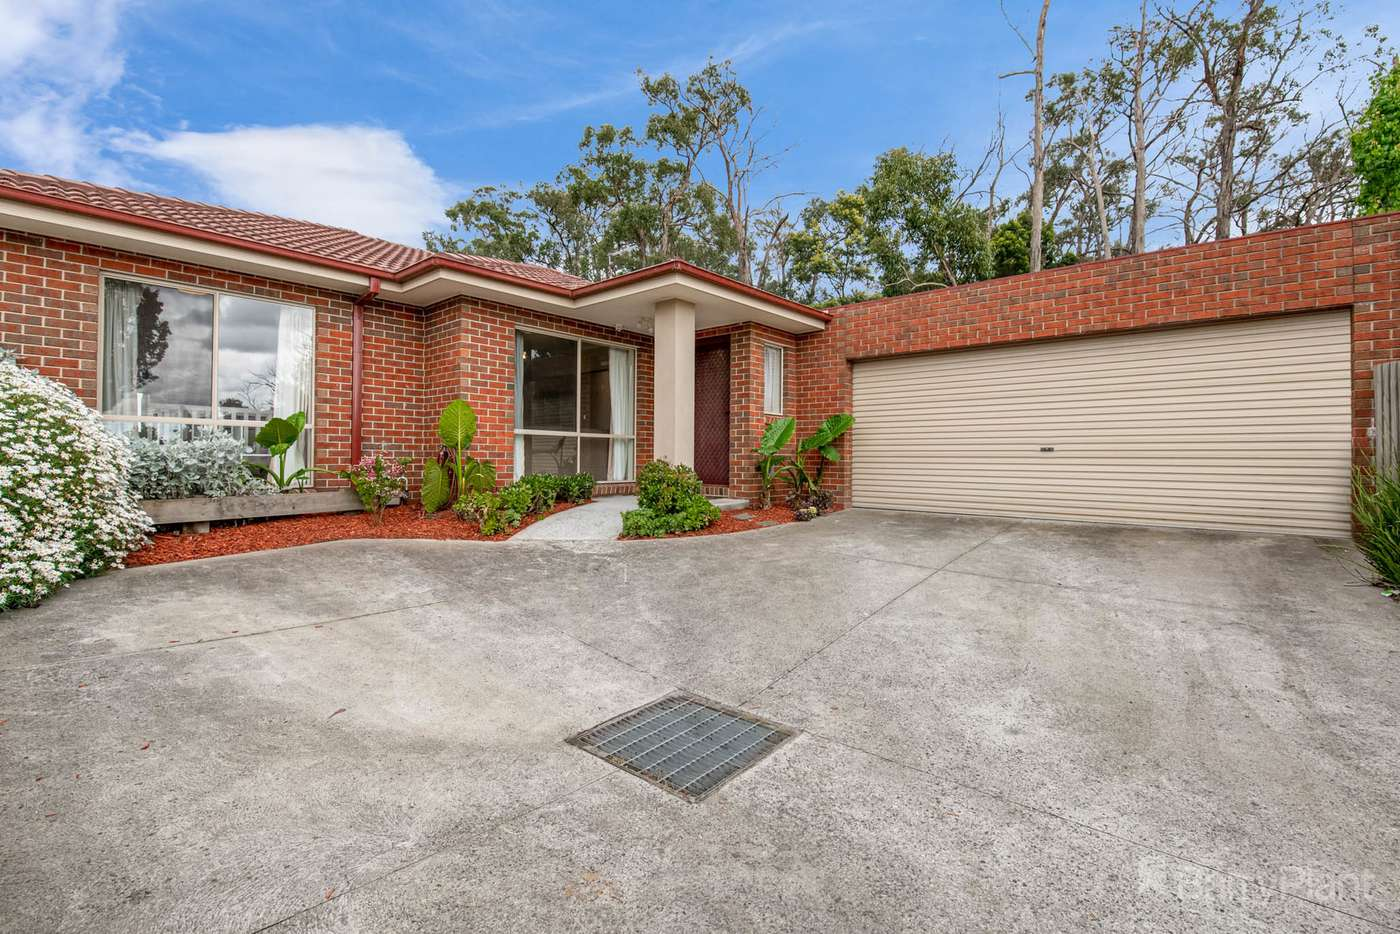 Main view of Homely house listing, 2/26 Donday Court, Pakenham VIC 3810